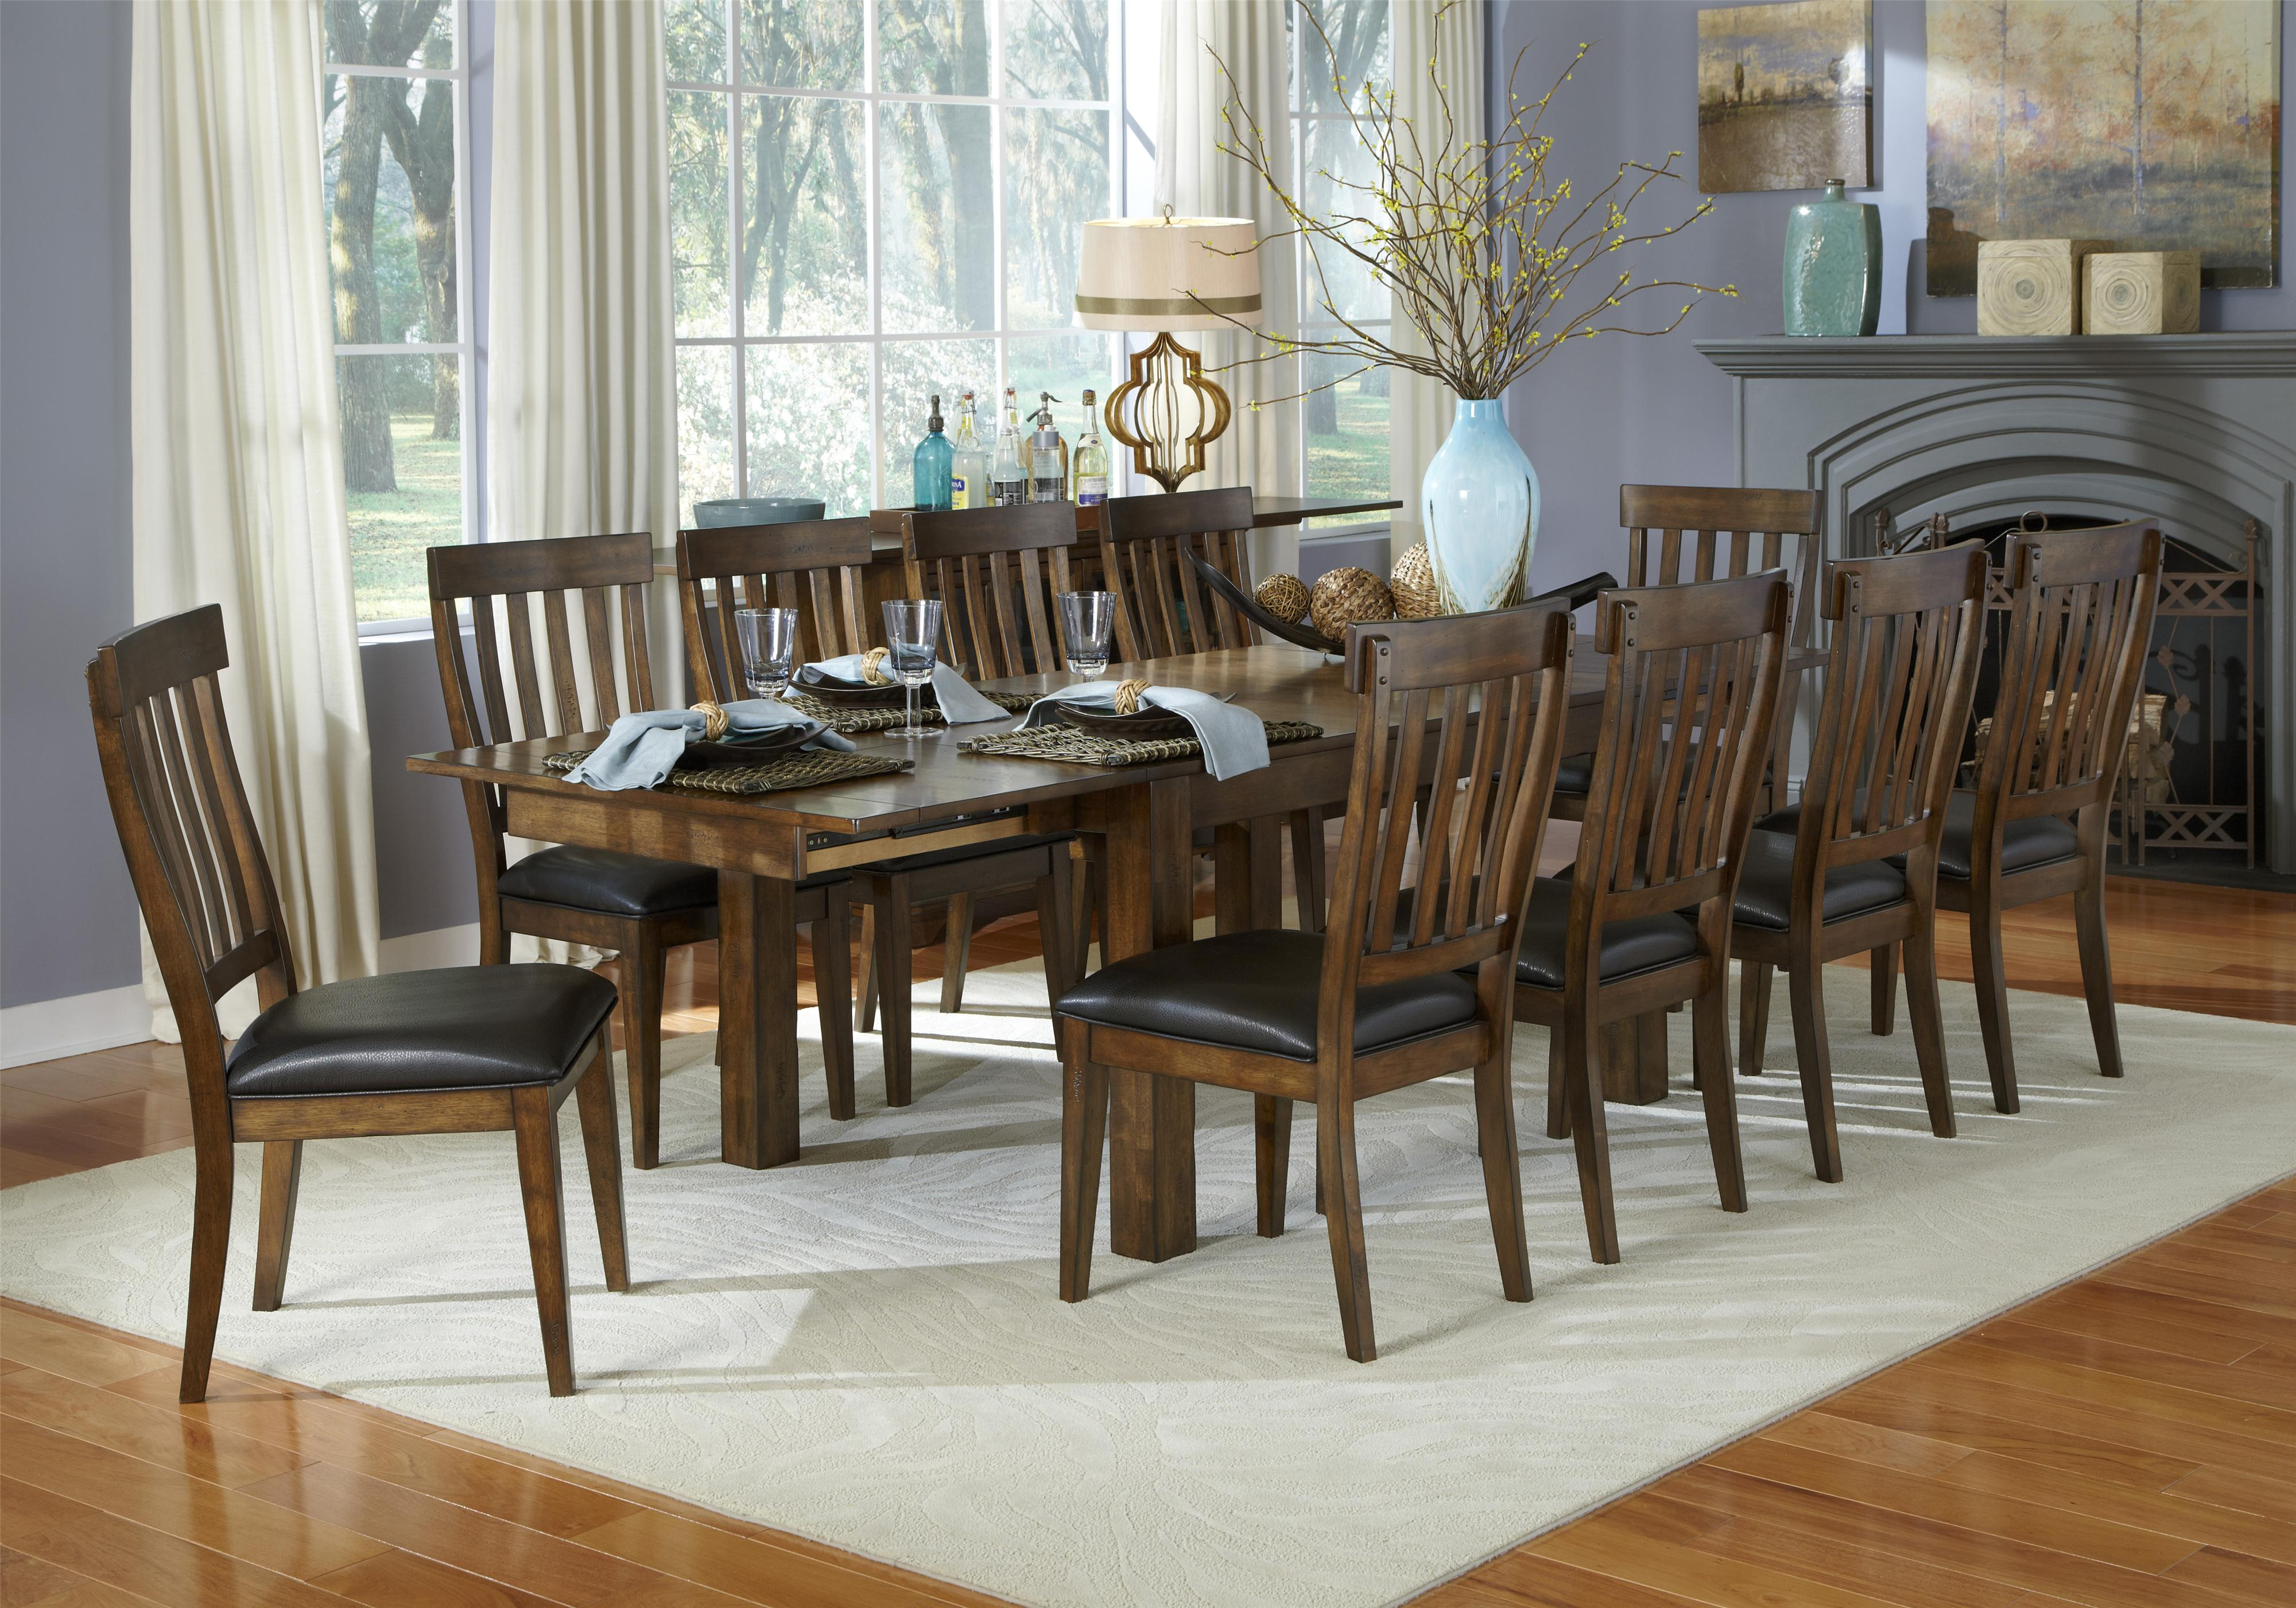 Mariposa 11 Piece Dining Table And Slatback Chairs Set By Aamerica At Rooms For Less